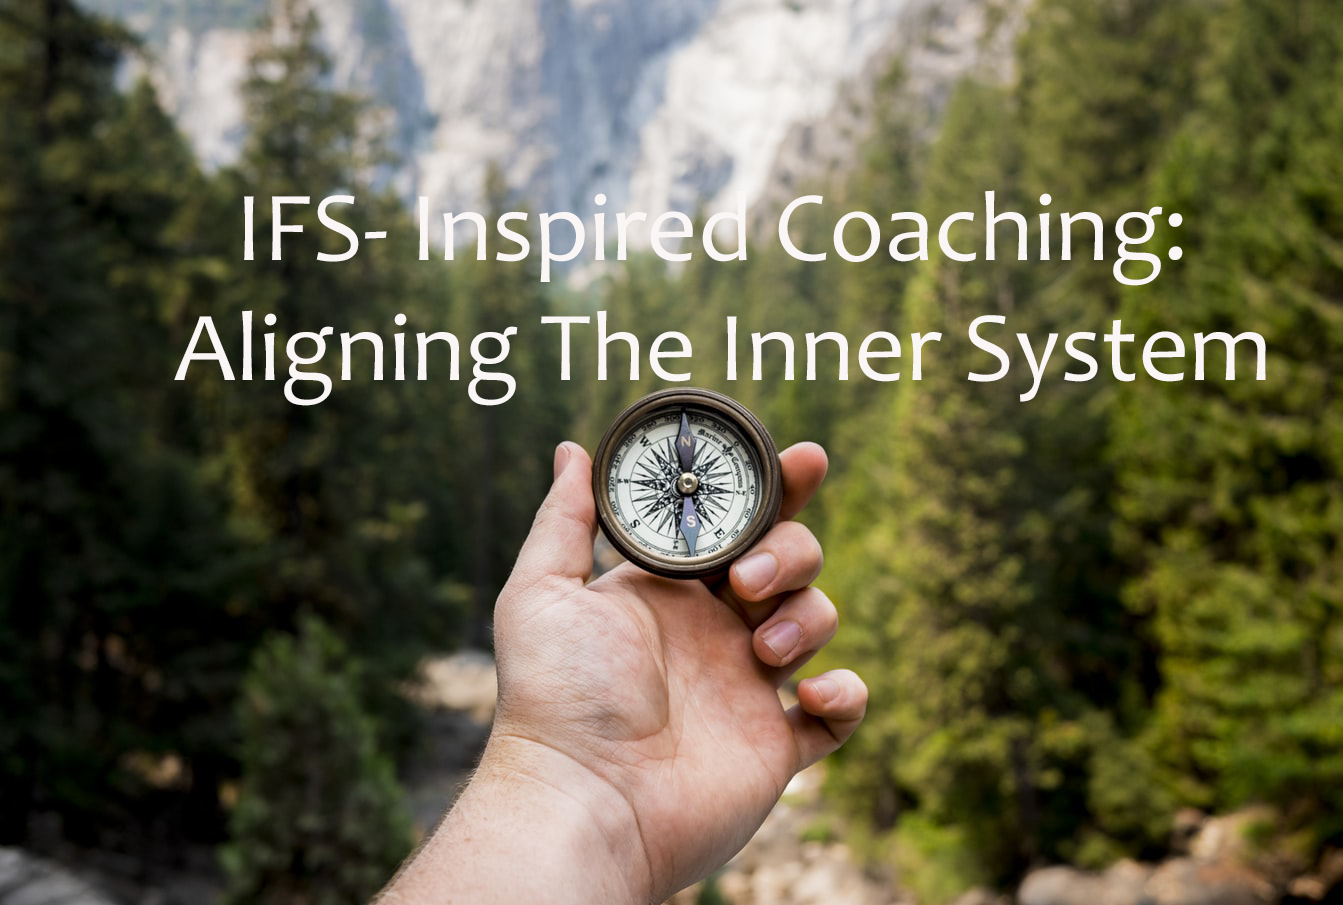 Image of IFS- Inspired Coaching: Aligning The Inner System